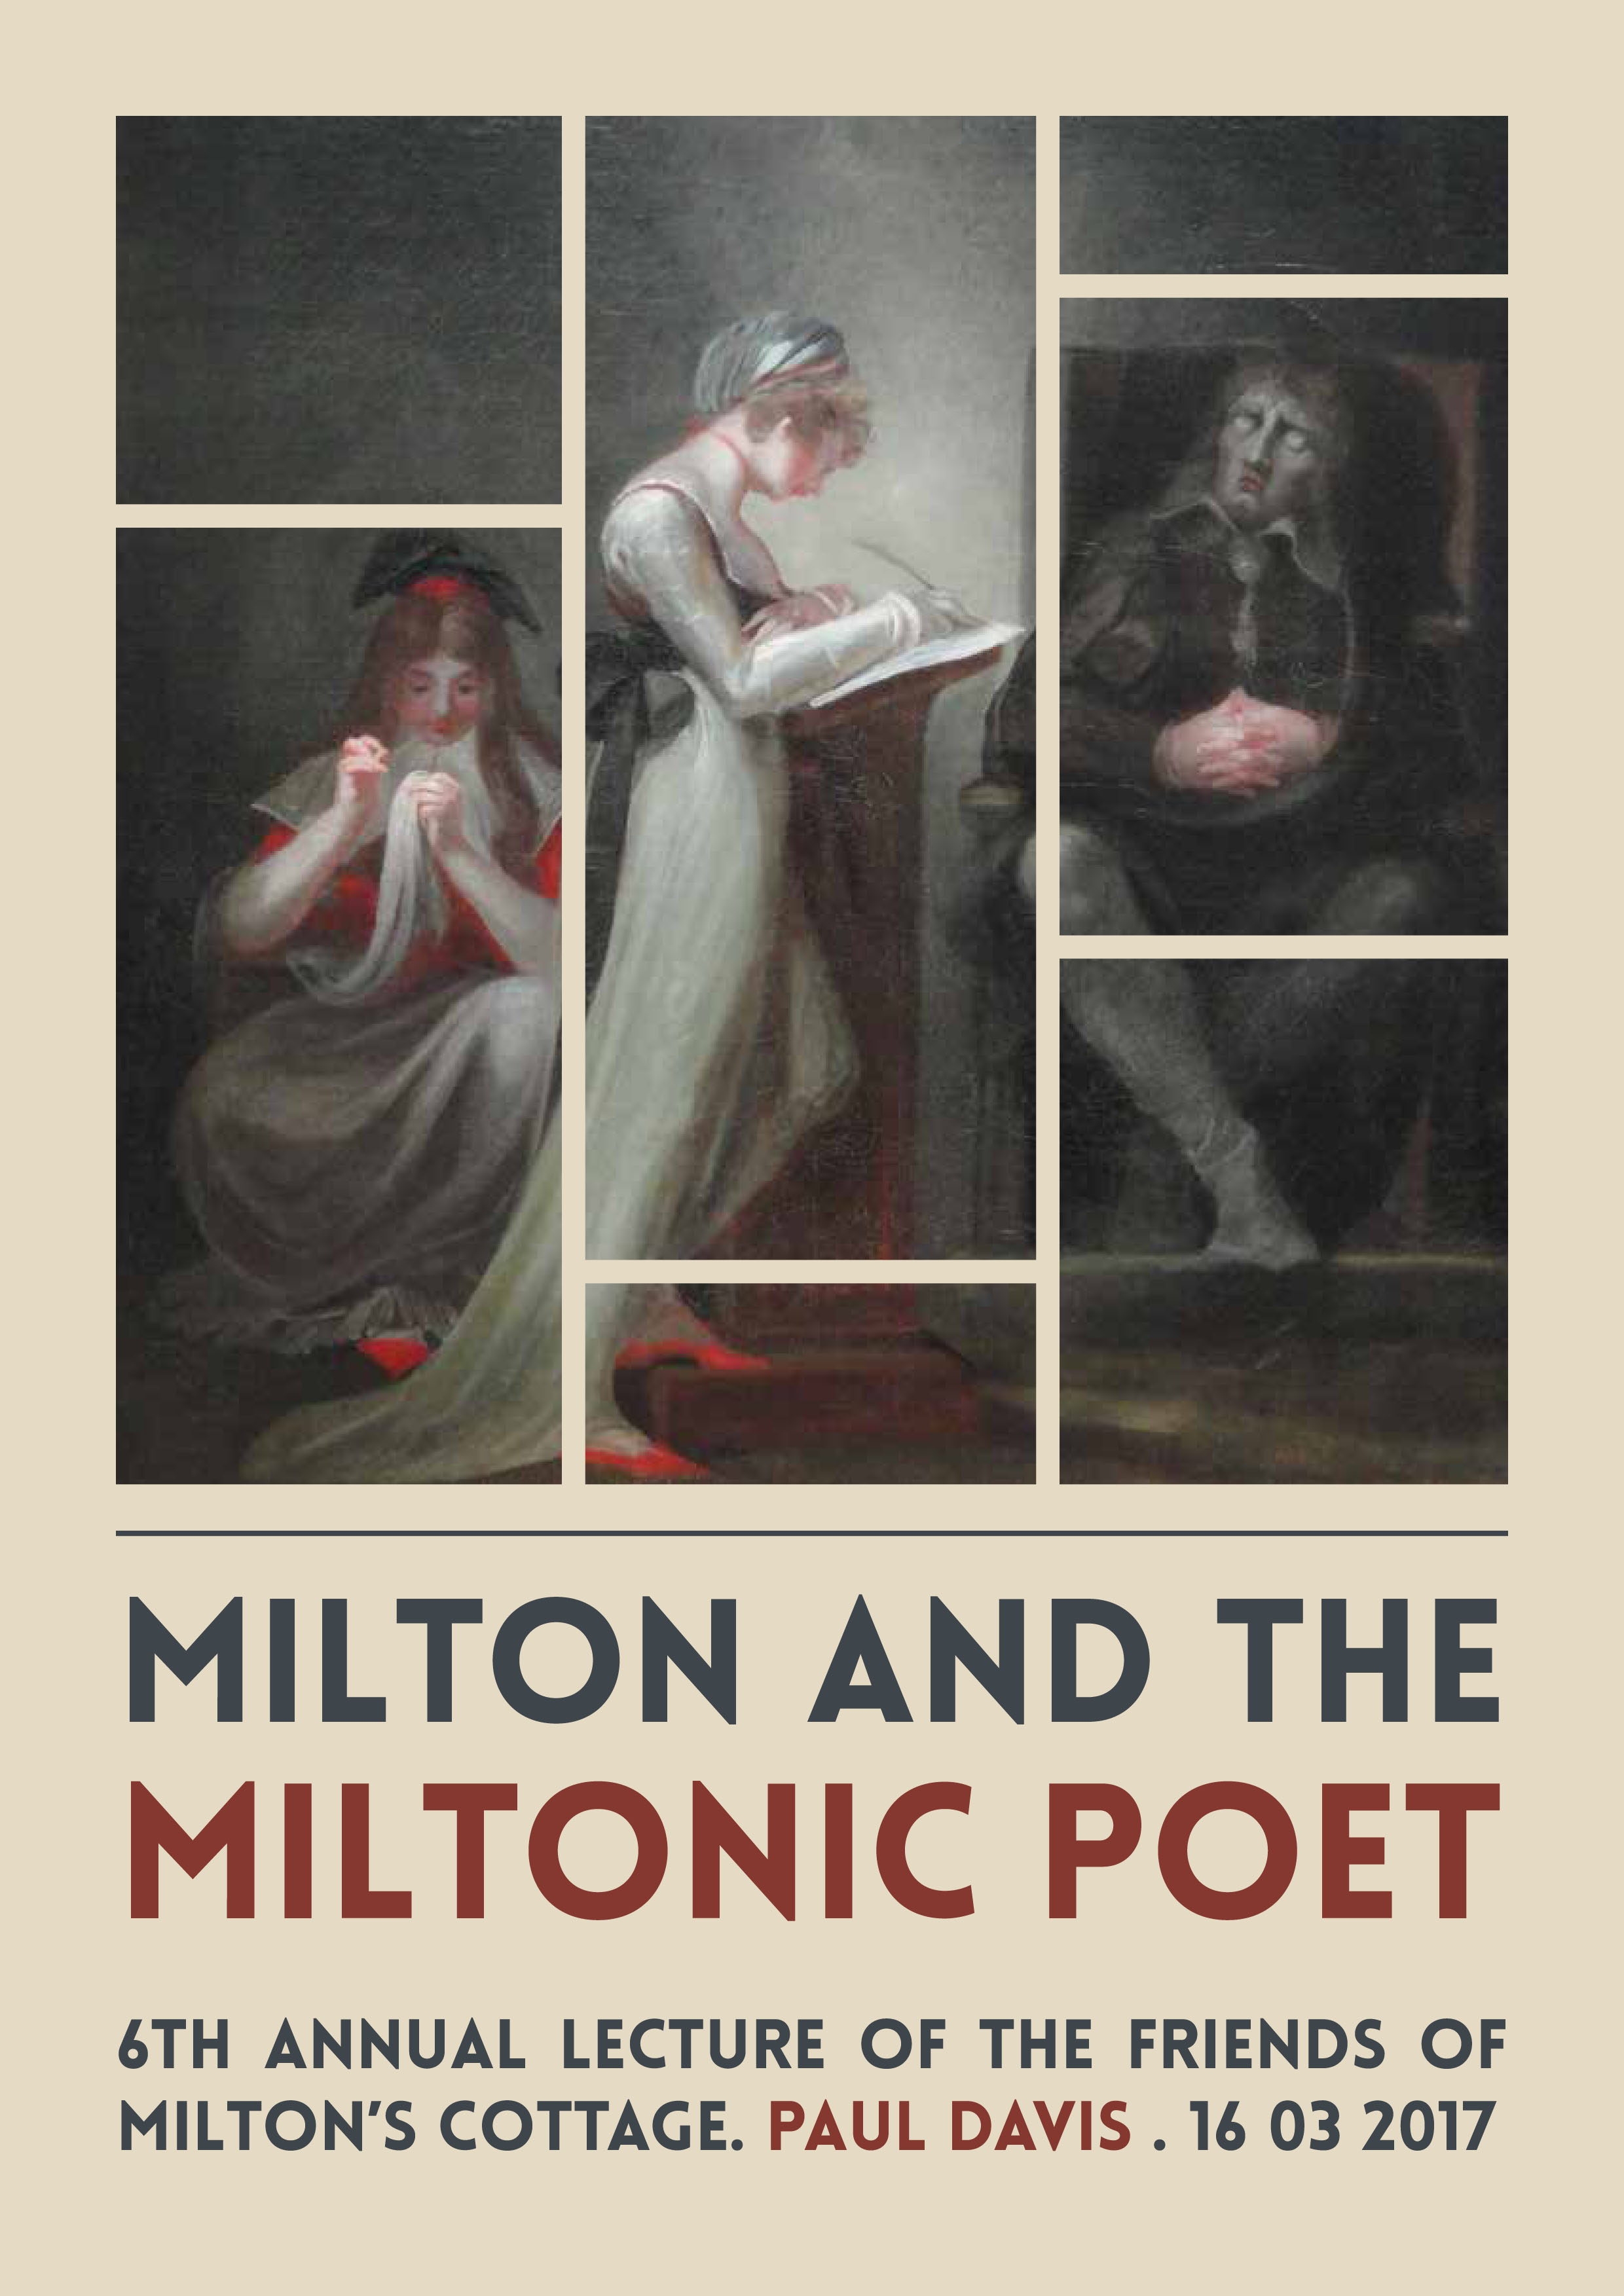 Milton and the Miltonic Poet: 6th annual lecture of the Friends of Milton's Cottage